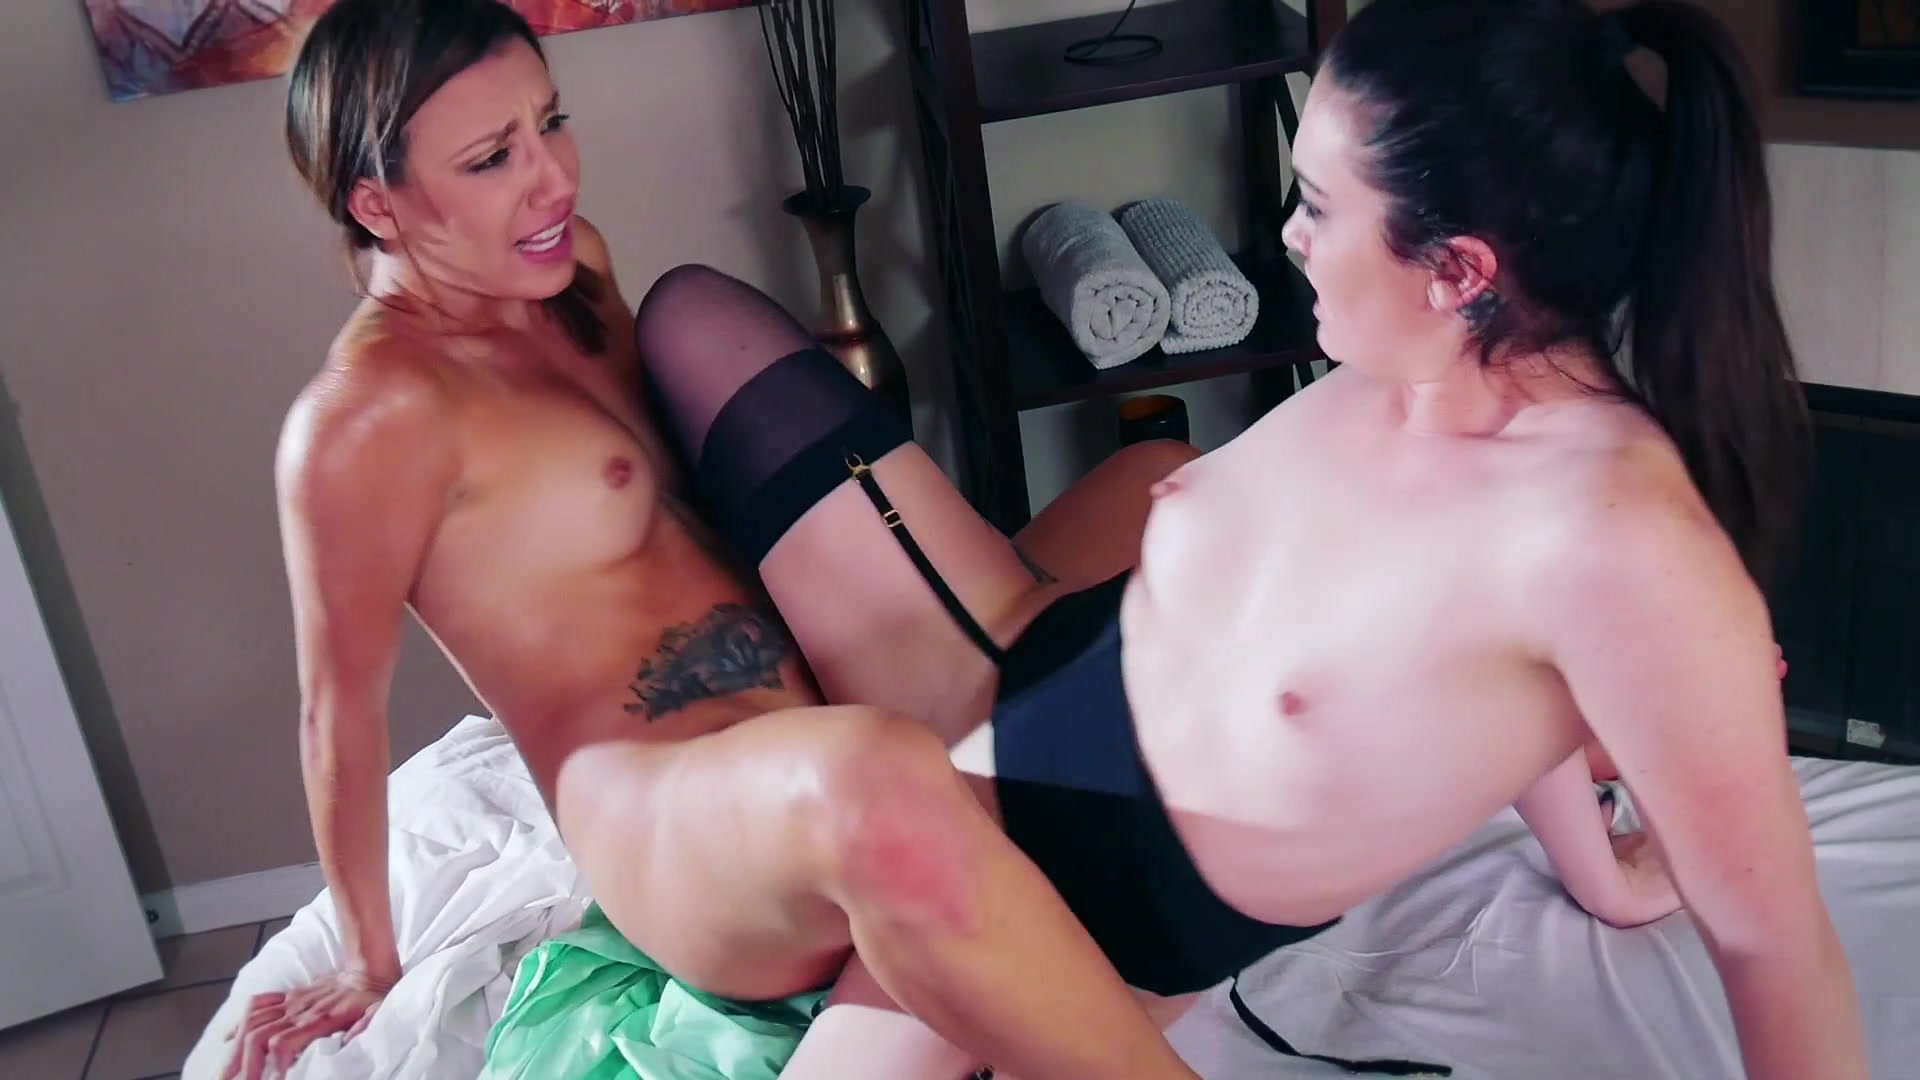 Kat Monroe and Sophia Grace Have Hot Lesbian Sex on the Massage Table from  Pussy Lickers 2   Spizoo   Adult Empire Unlimited